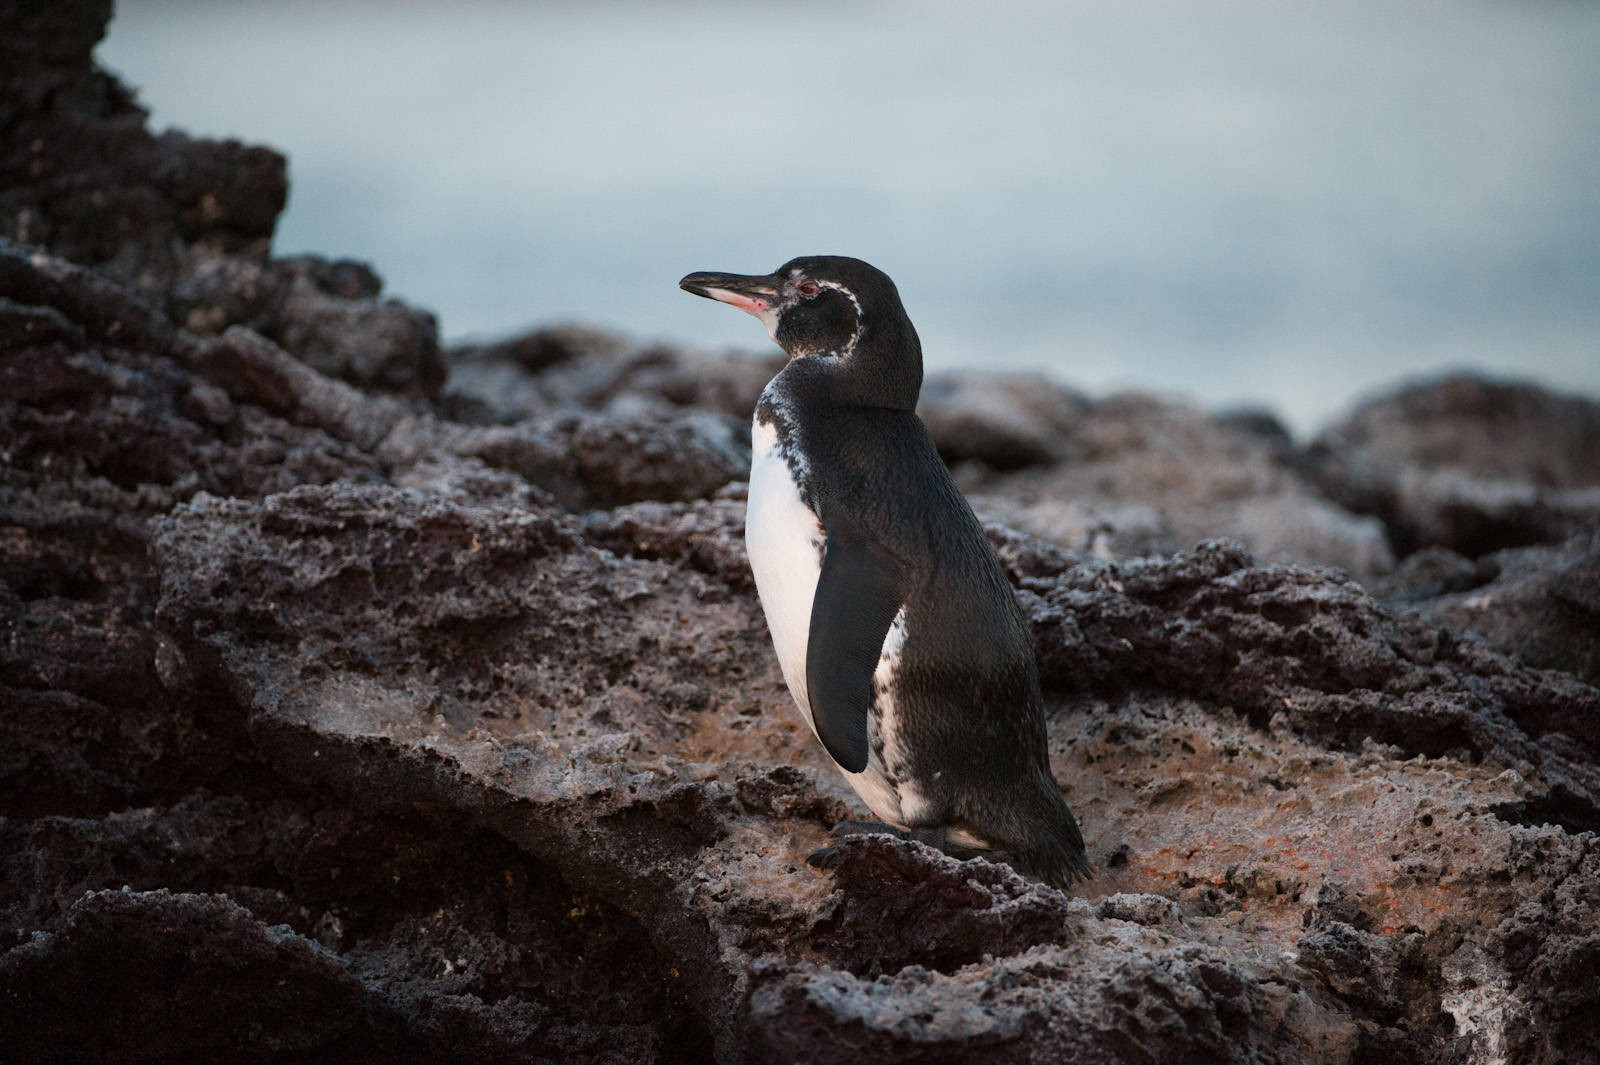 Photo: Galapagos Penguins (Spheniscus mendiculus) along the shore of Chinese Hat Island in Galapagos National Park.